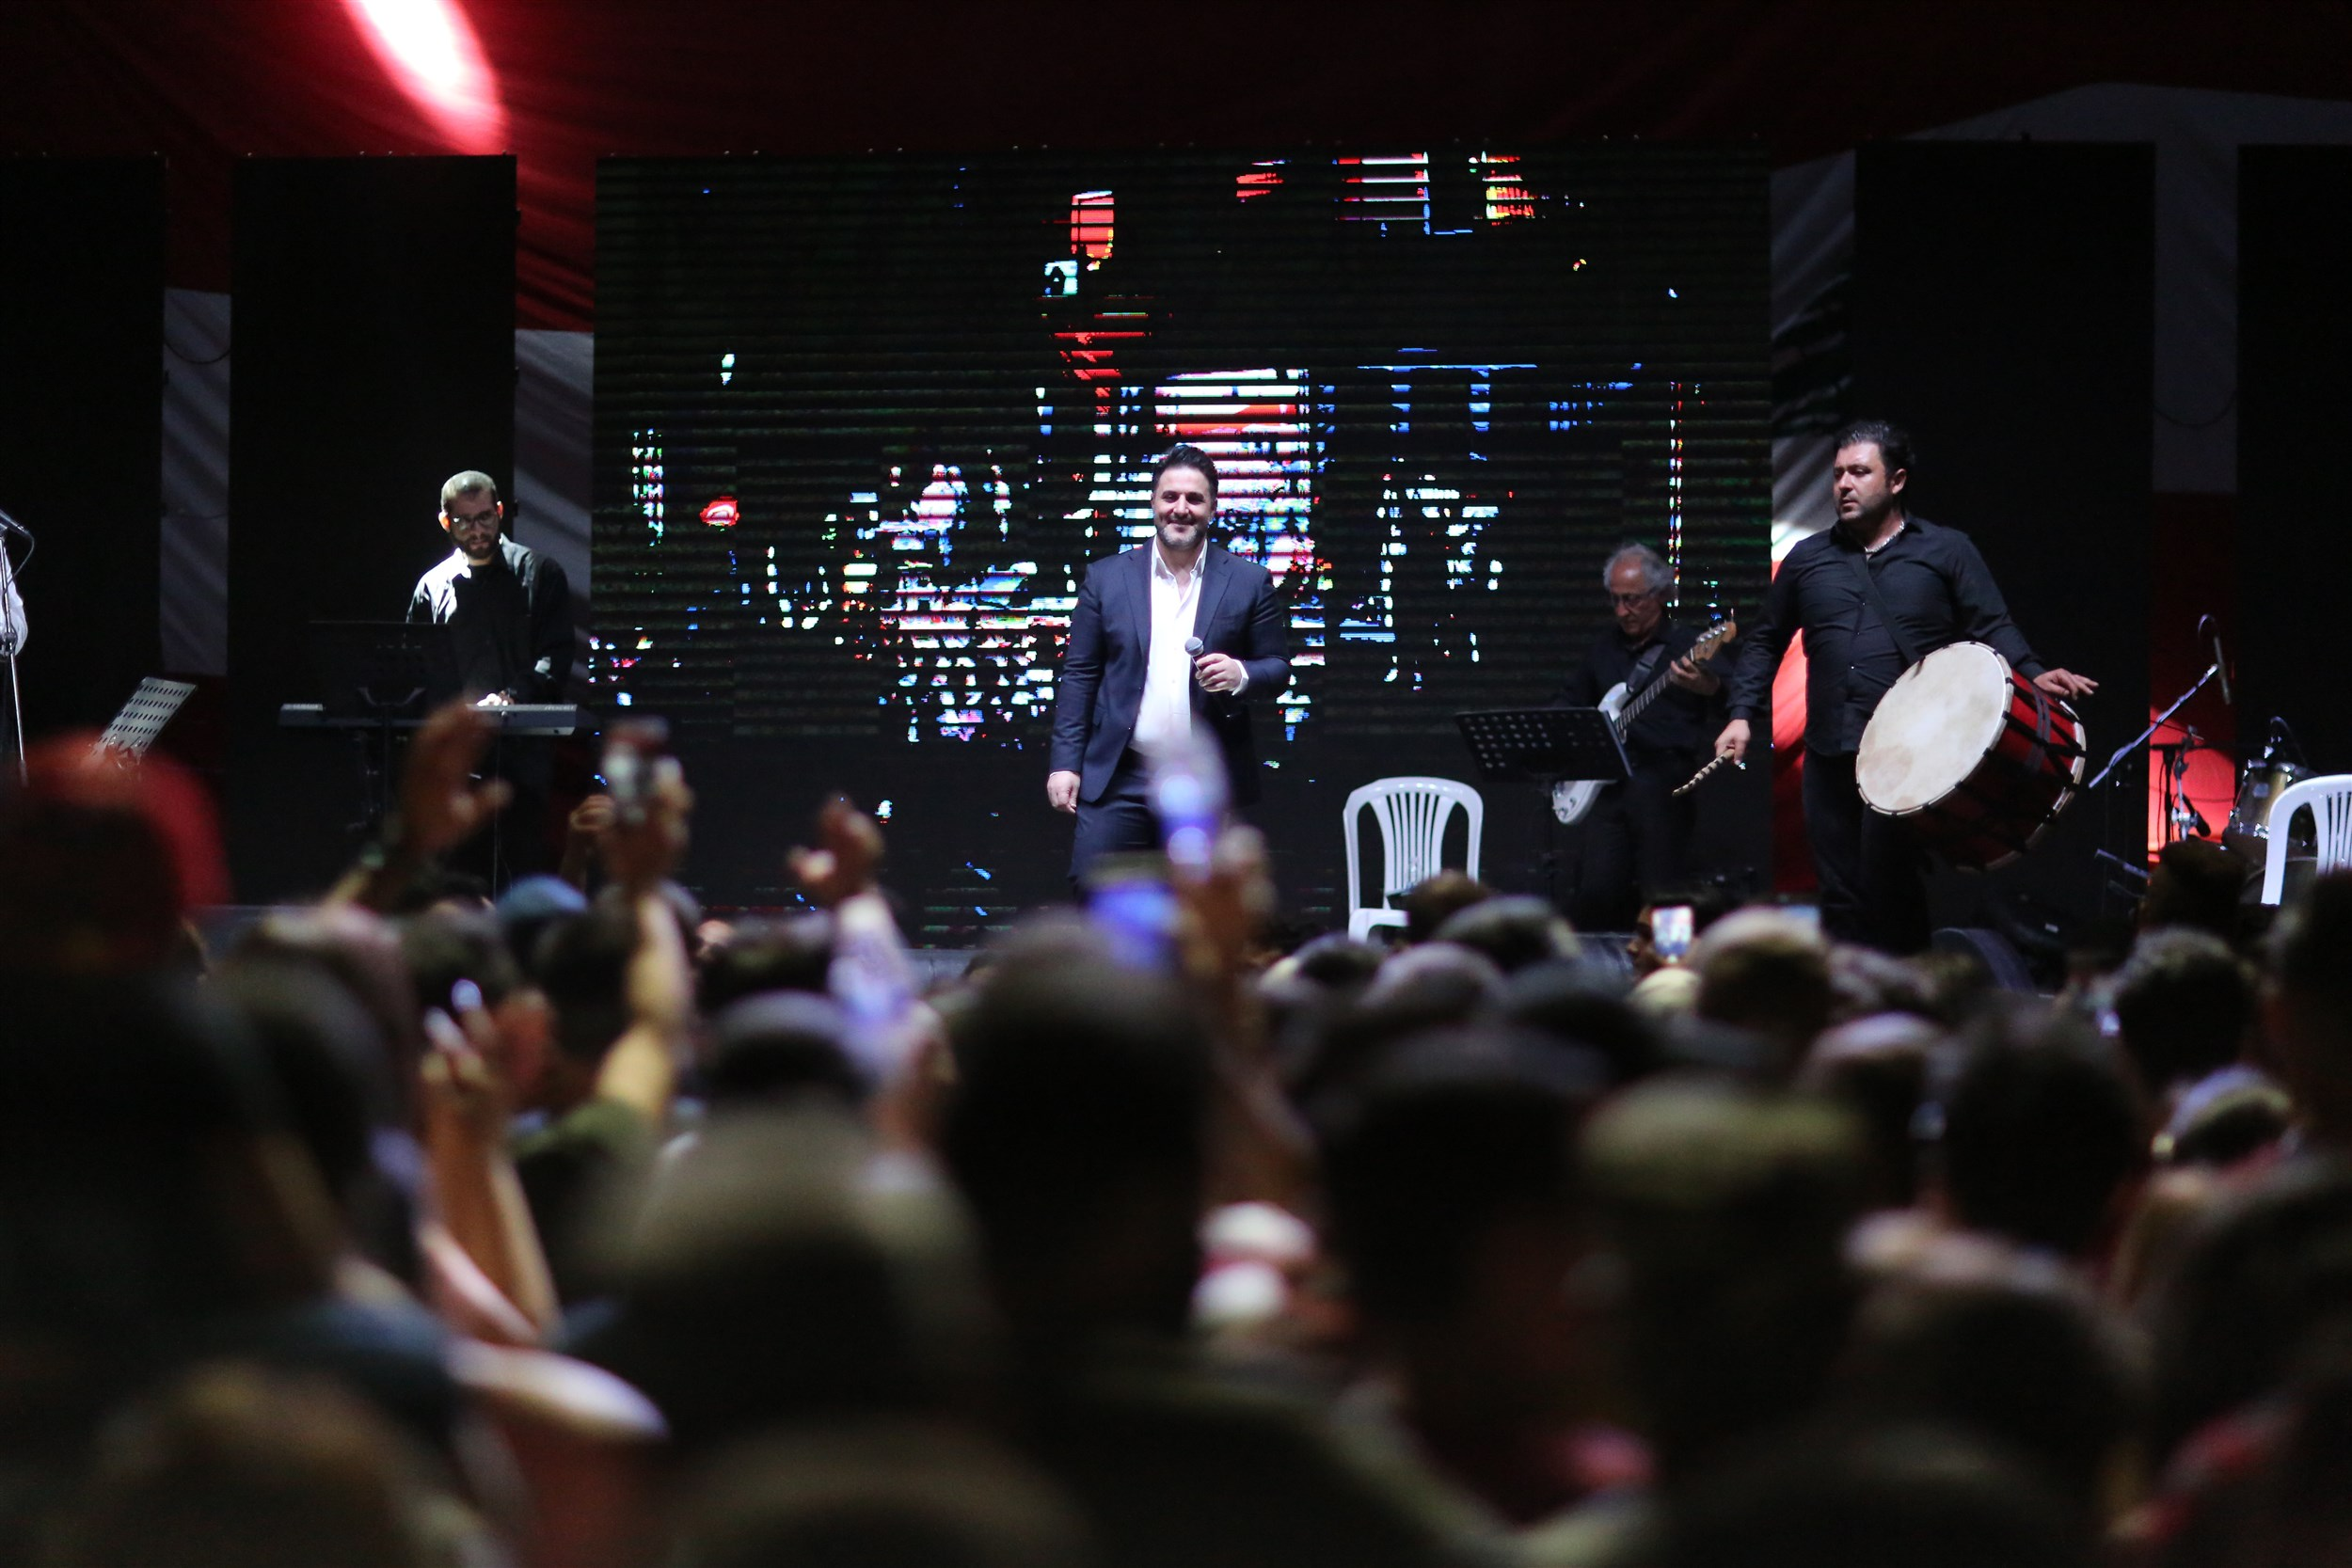 superstar melham zein performing at the sandouk el dounia festival in a 17,000m2 area filled with an audience of more than 14,000 people of children and their families.